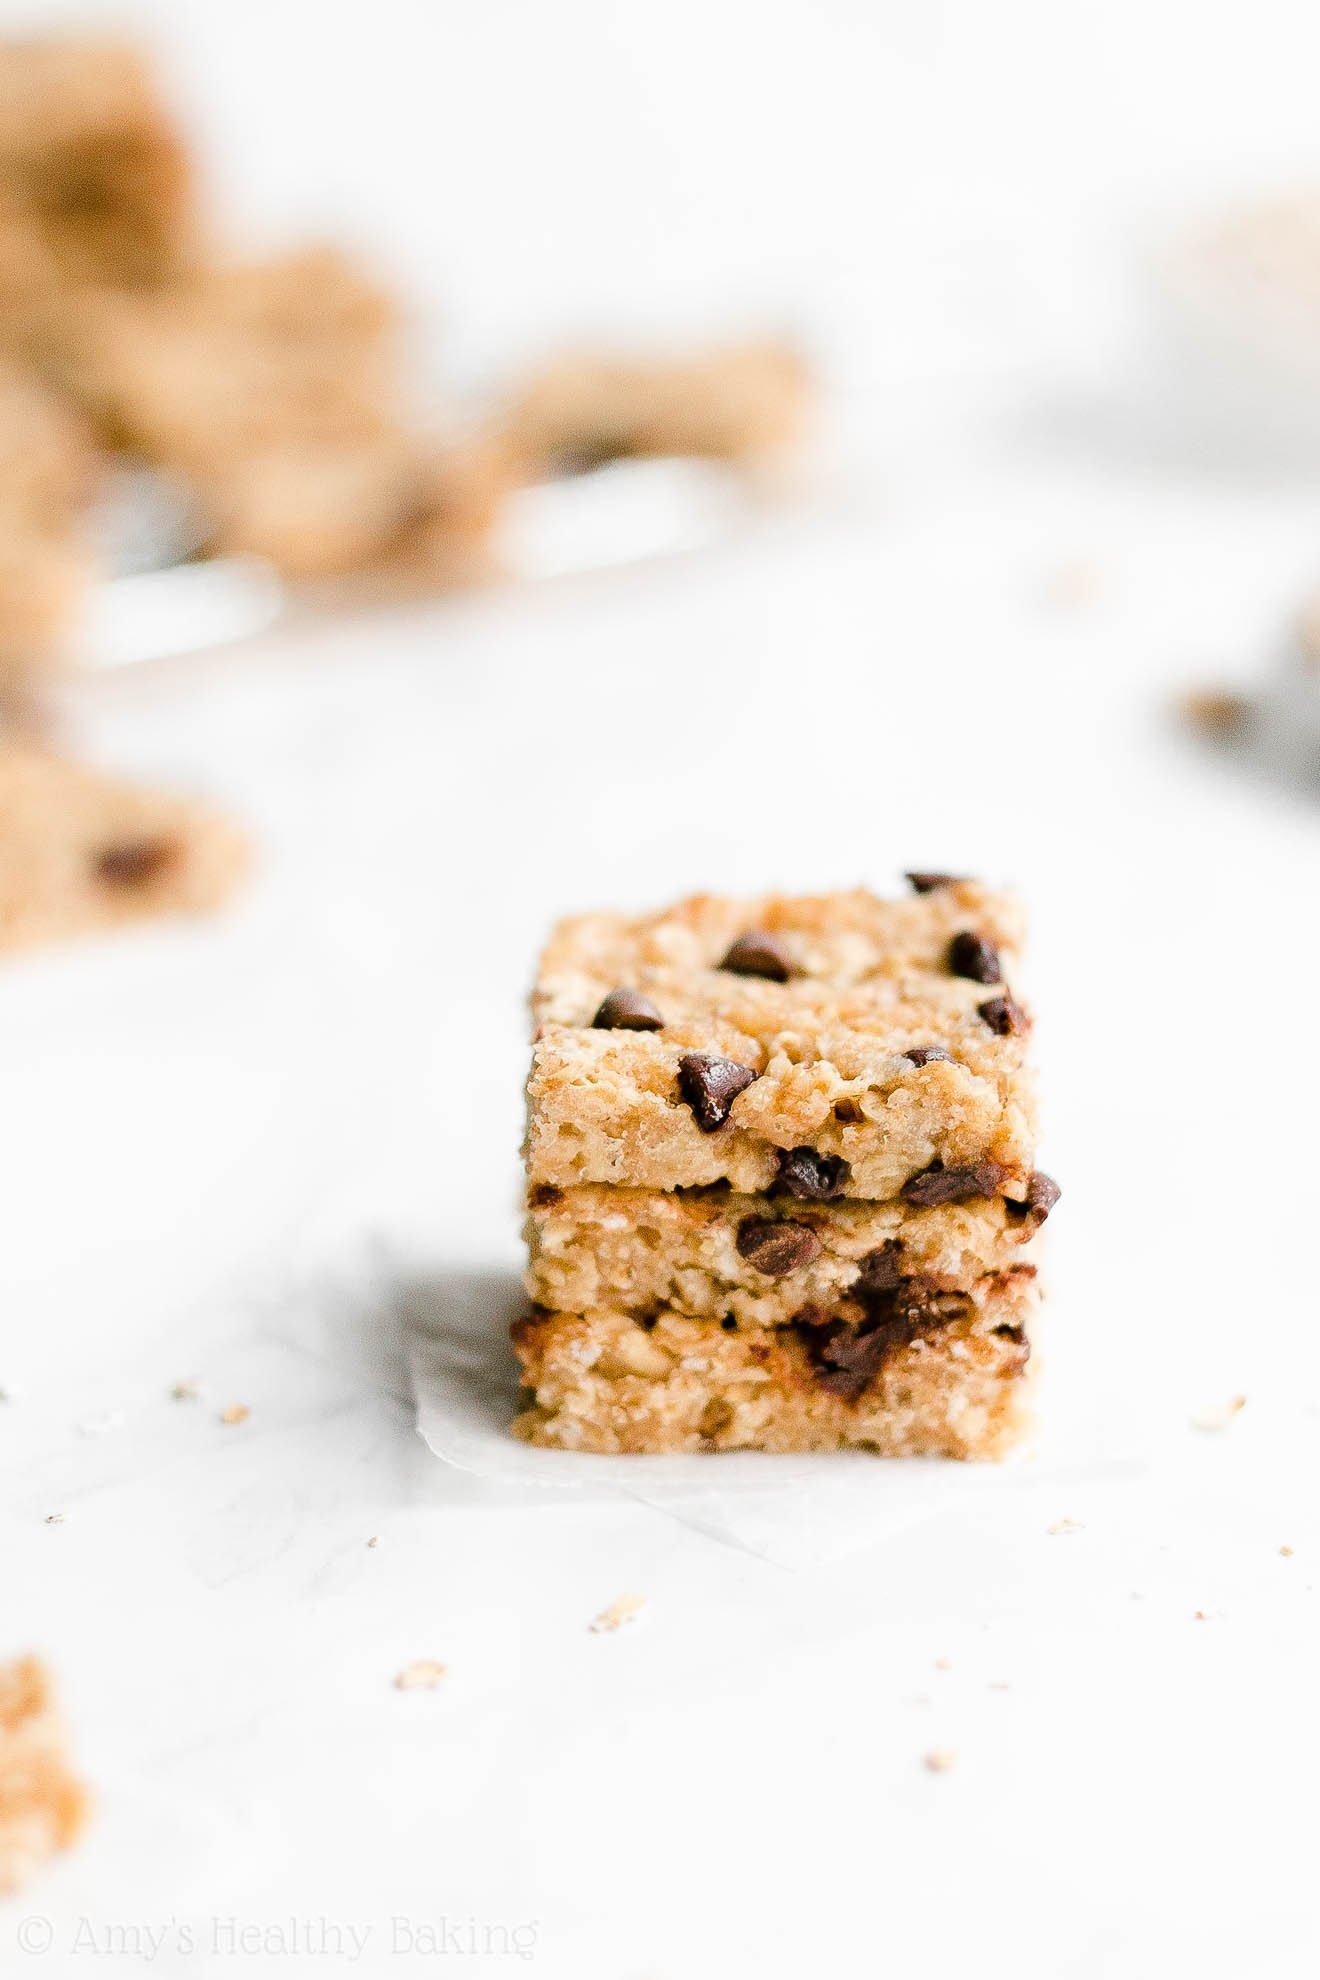 Easy Healthy Homemade Honey Oats Chocolate Chip Peanut Butter Granola Bars